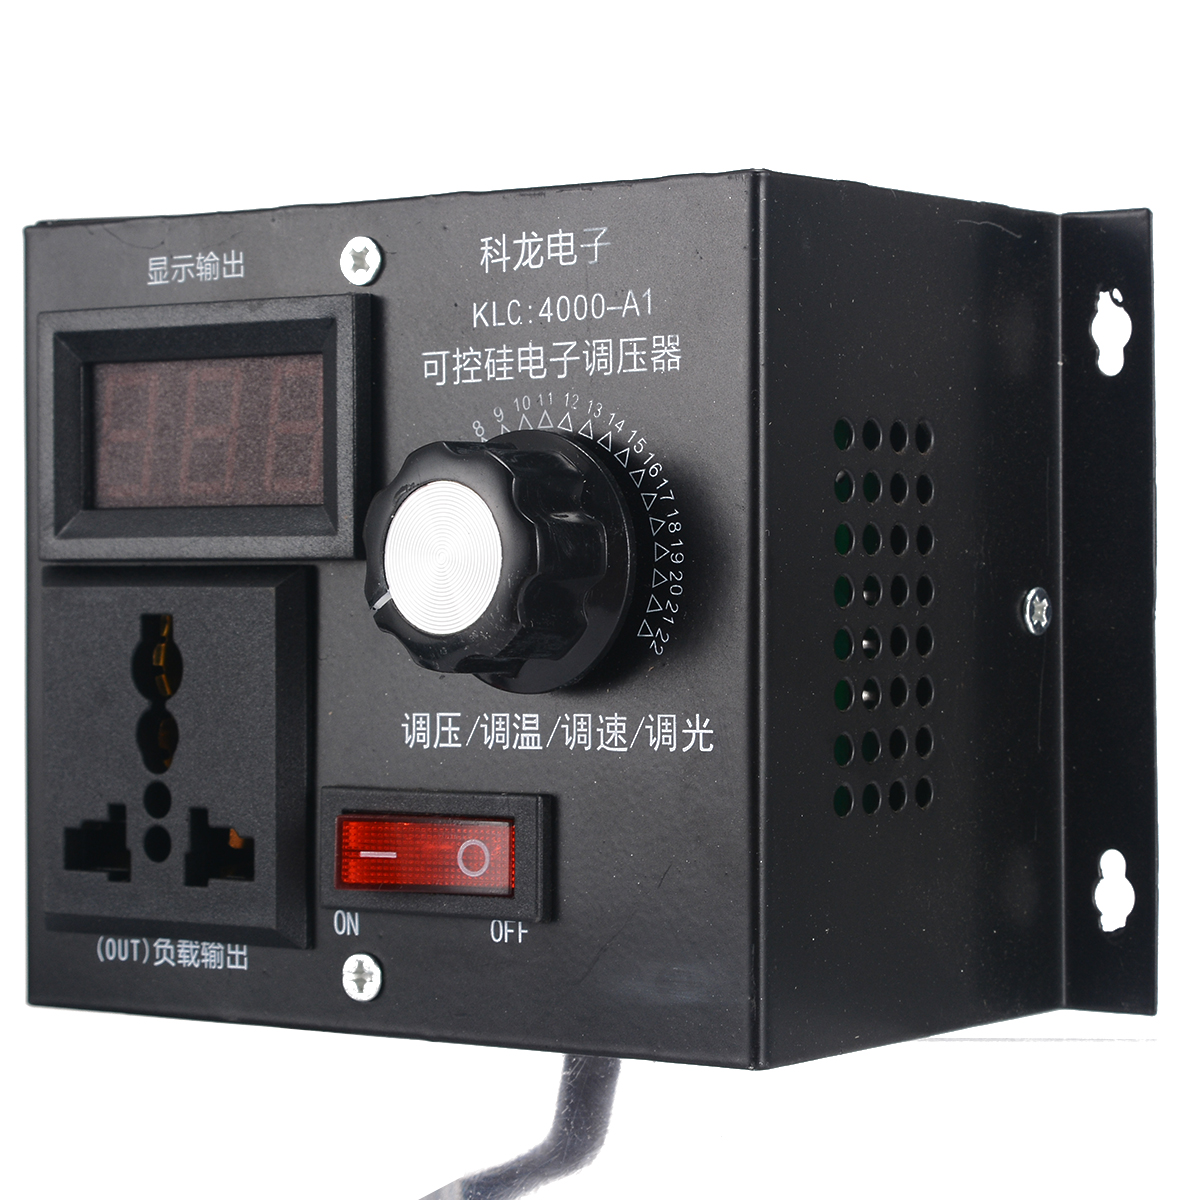 220V 4000W Variable Voltage Controller For Fan Speed Motor Control Dimmer High Power Controlled Electronic Voltage Regulator